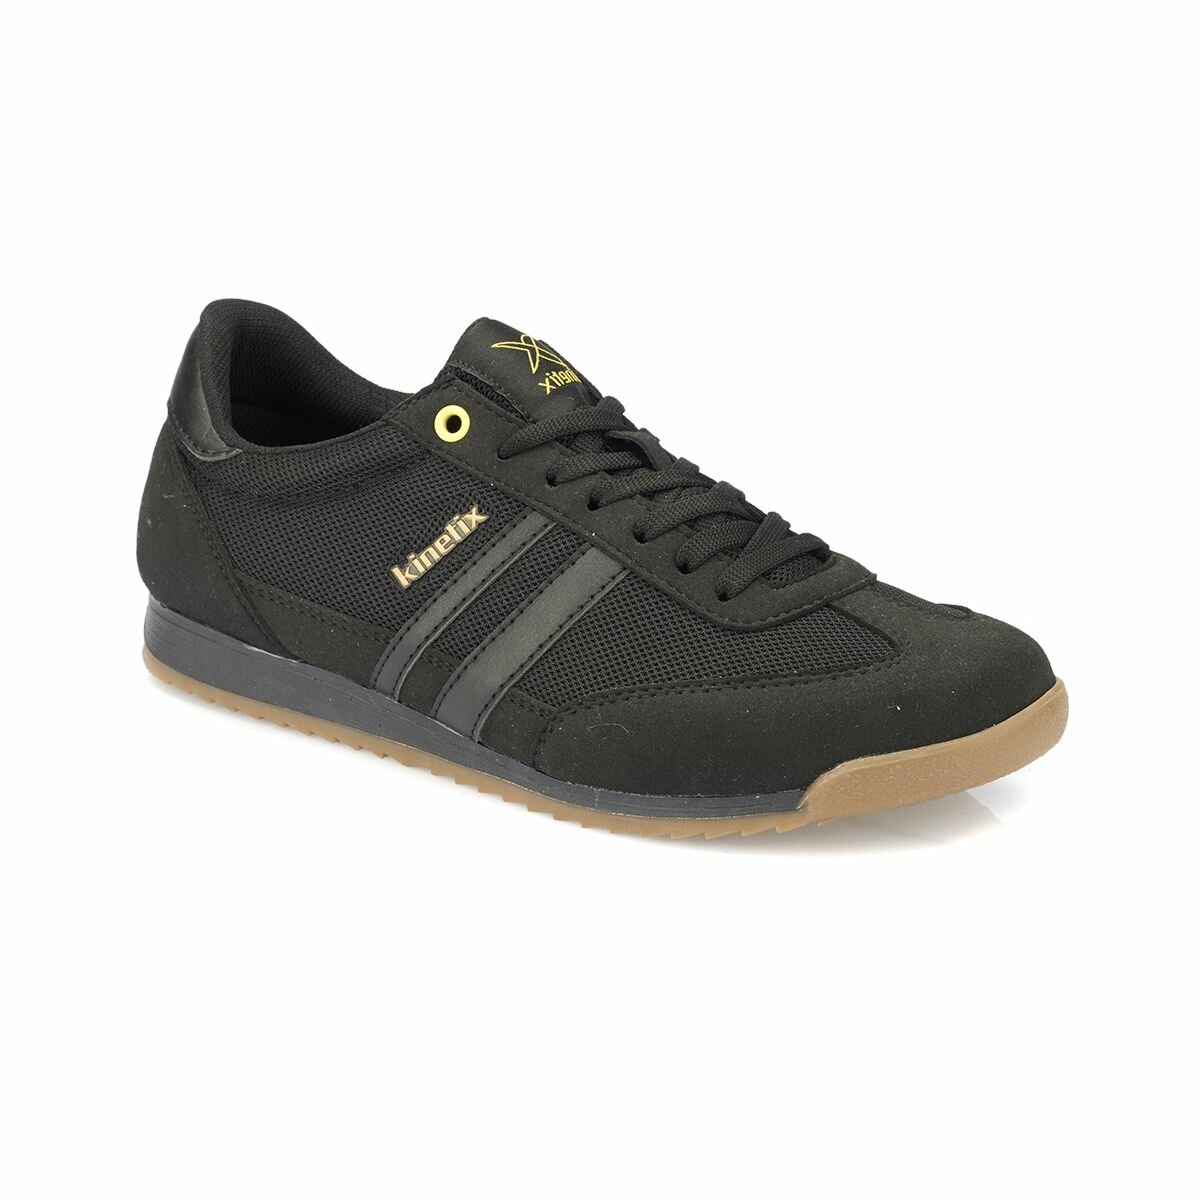 FLO HALLEY TX M Black Men 'S Sneaker Shoes KINETIX